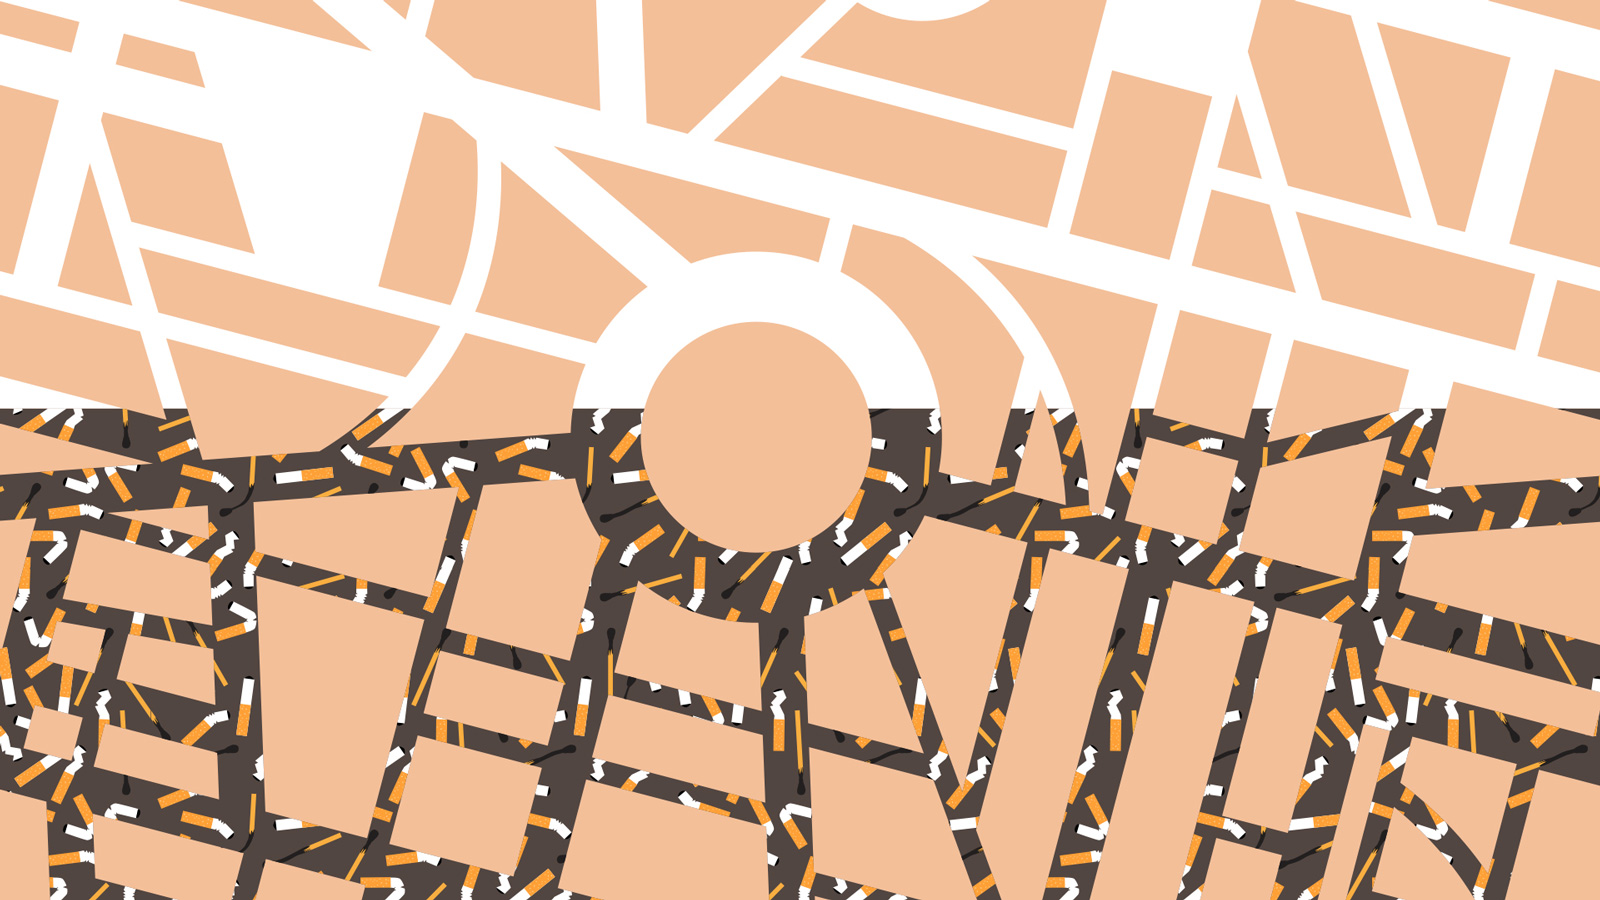 Illustration of streets with cigarette buds